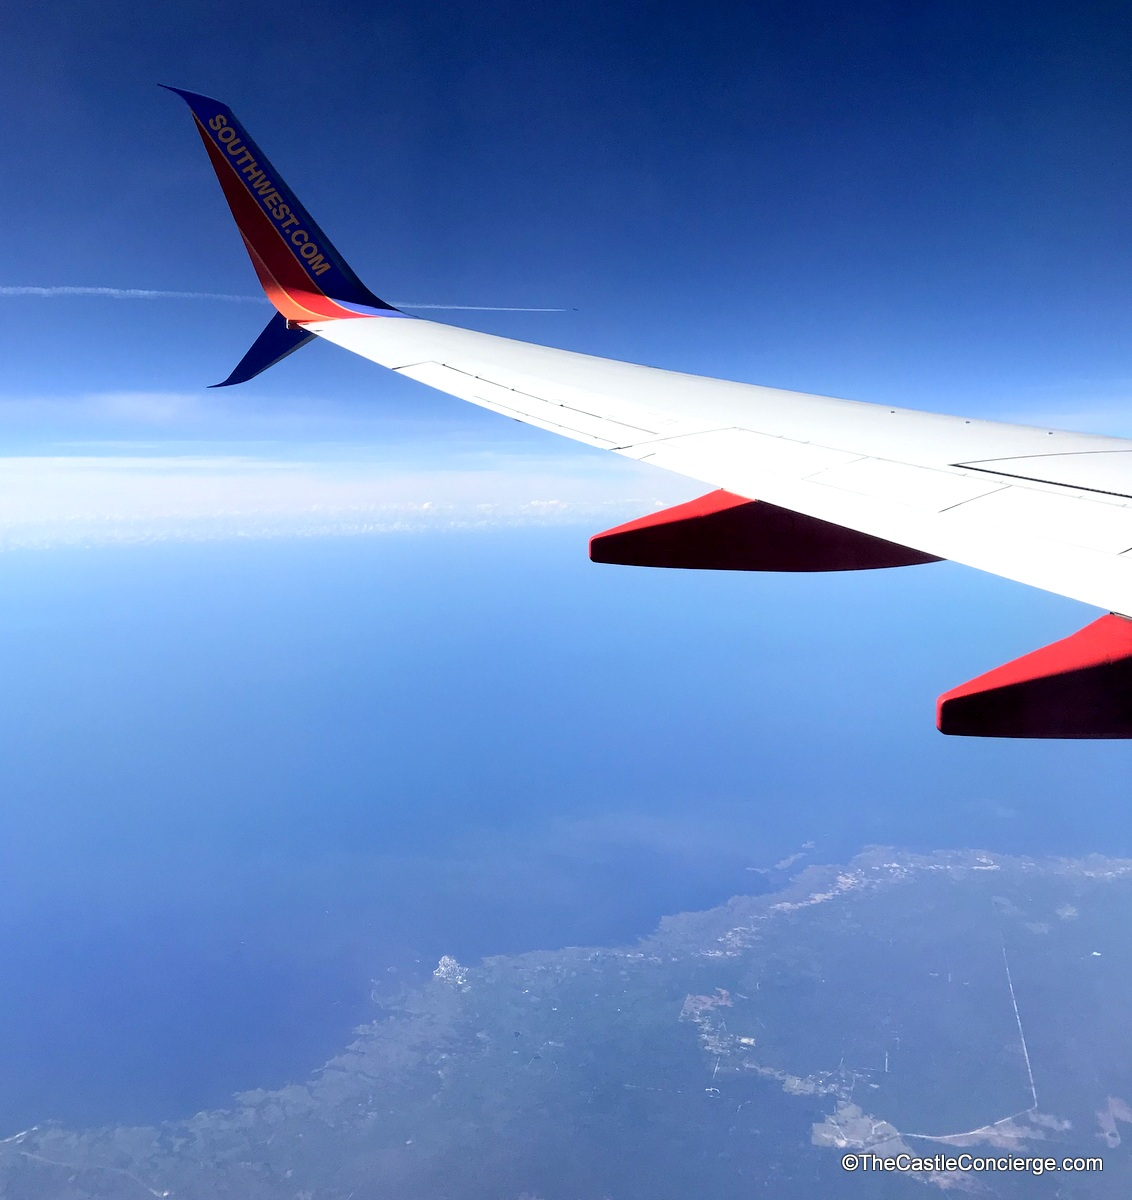 Fly to your next destination via Southwest or your favorite airline.